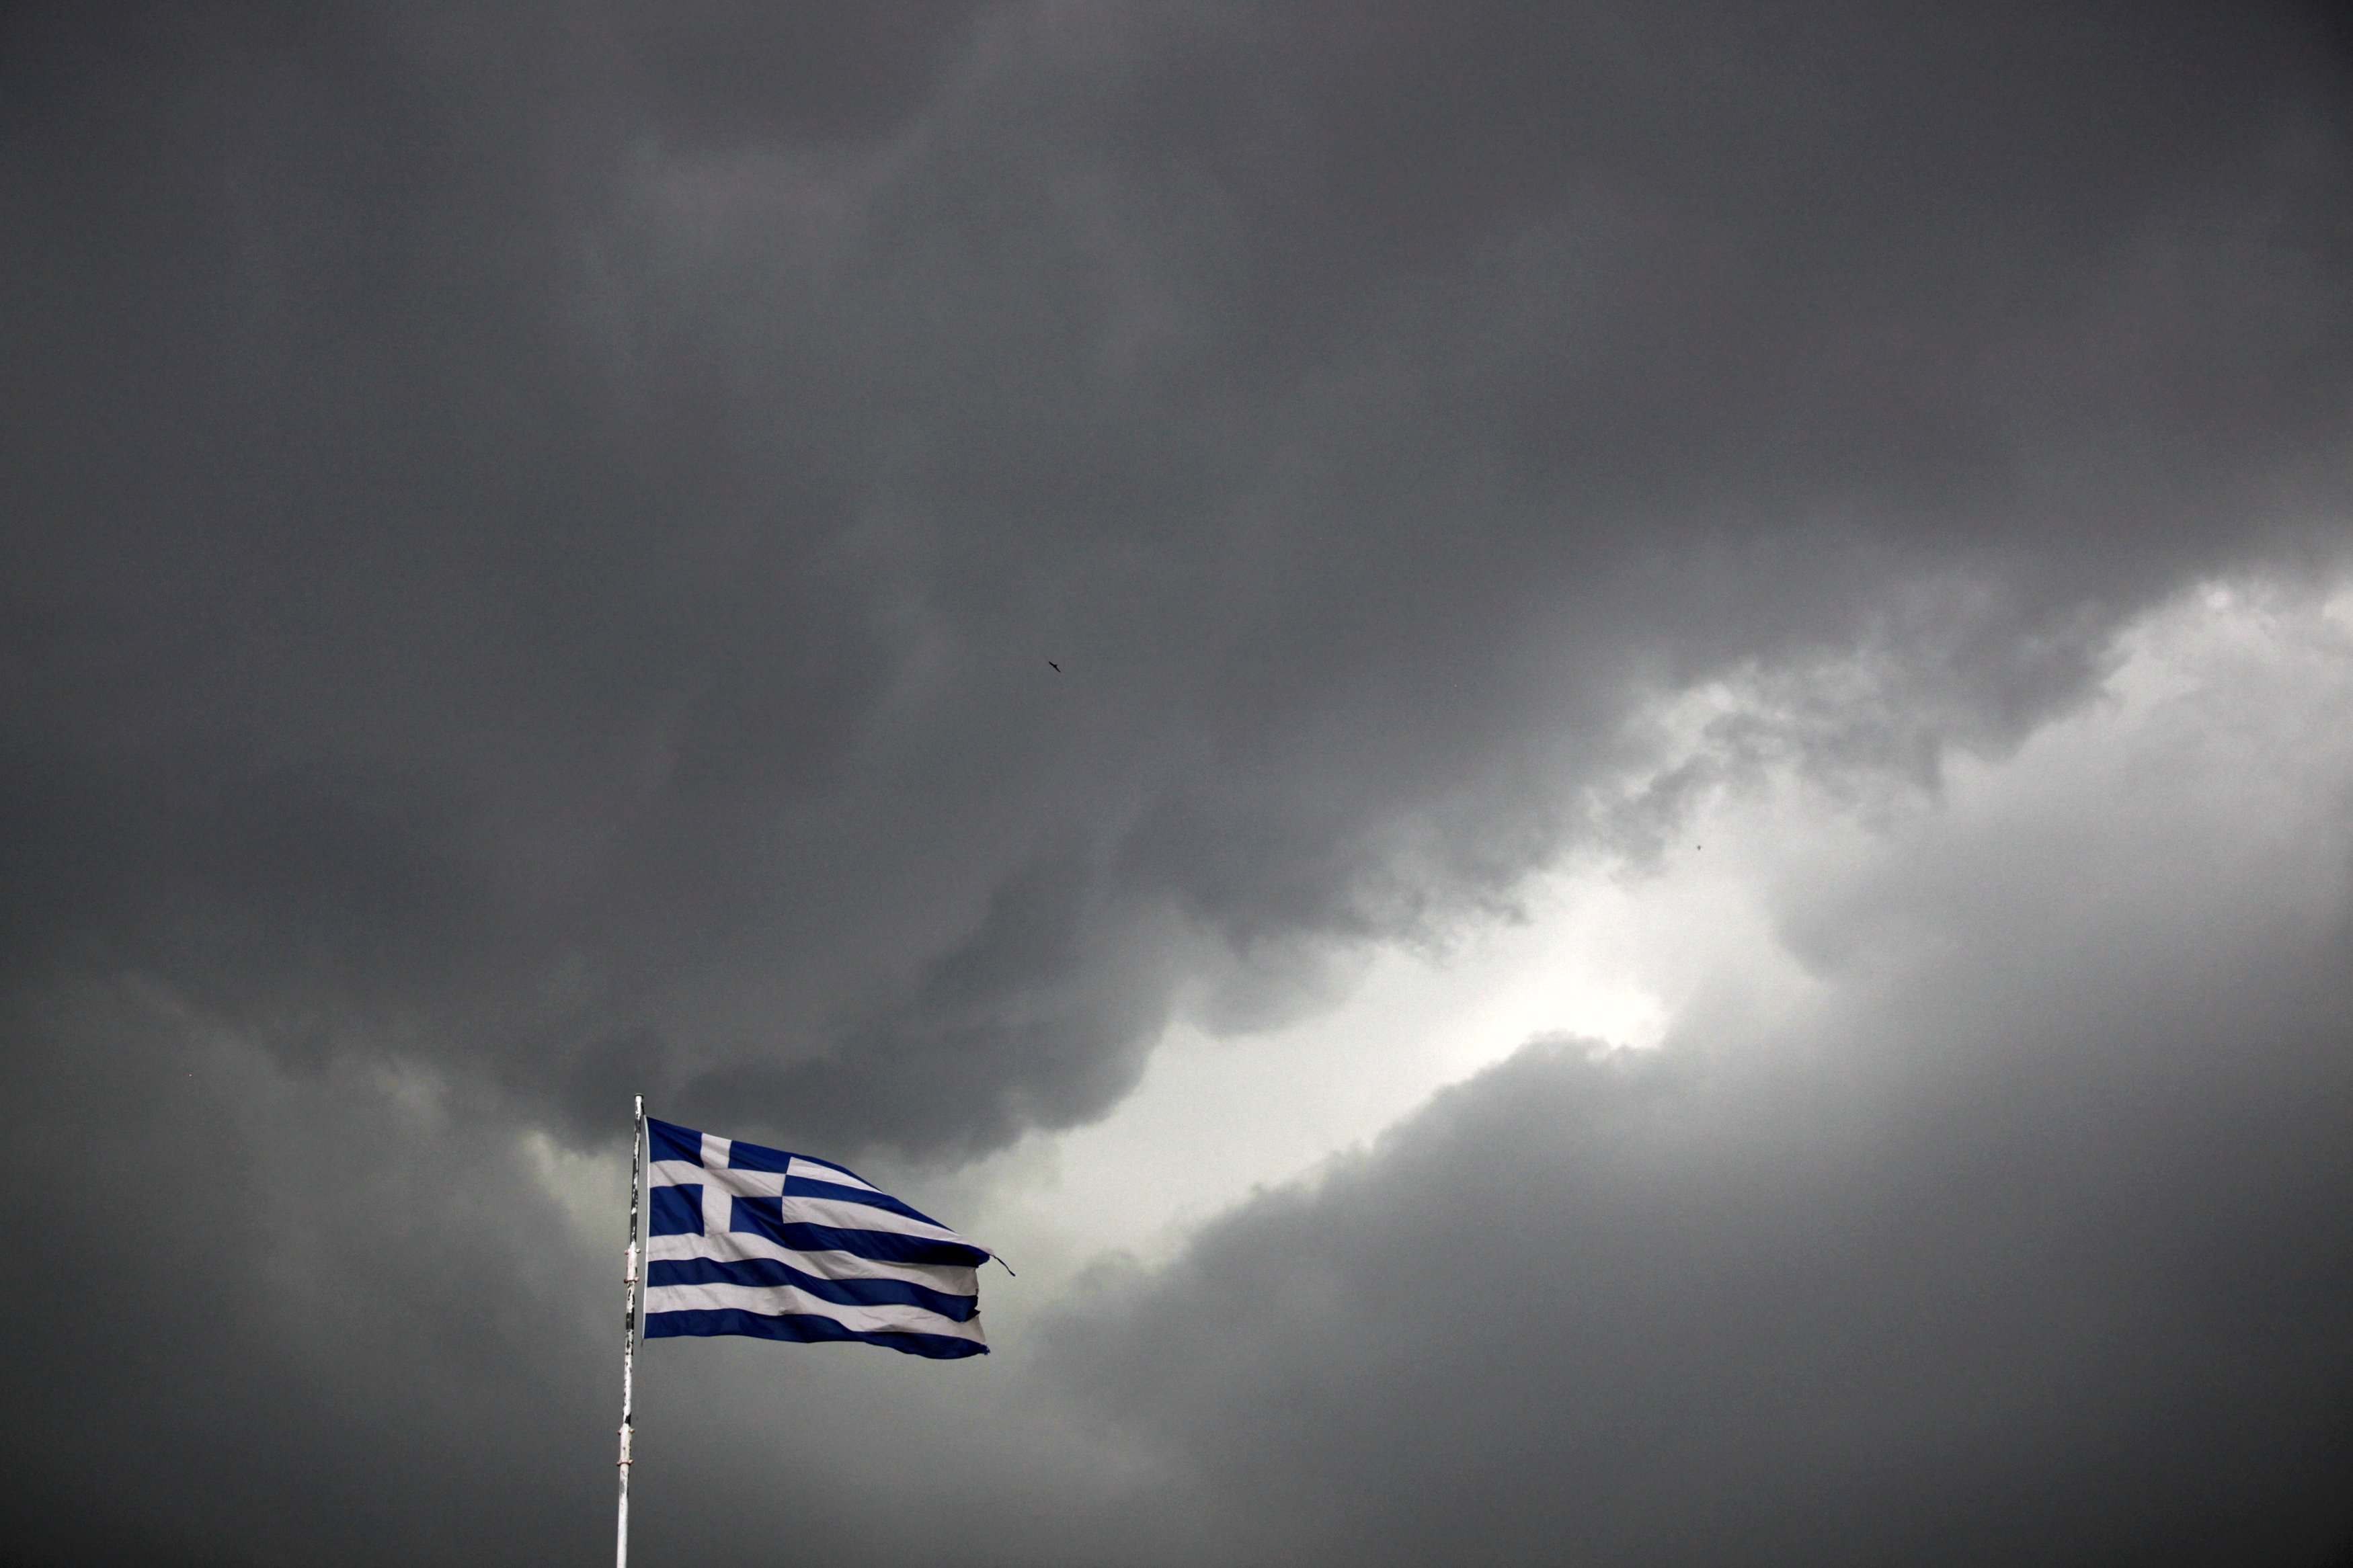 A Greek national flag flutters atop a building as dark clouds fill the sky in Athens on June 30, 2015.